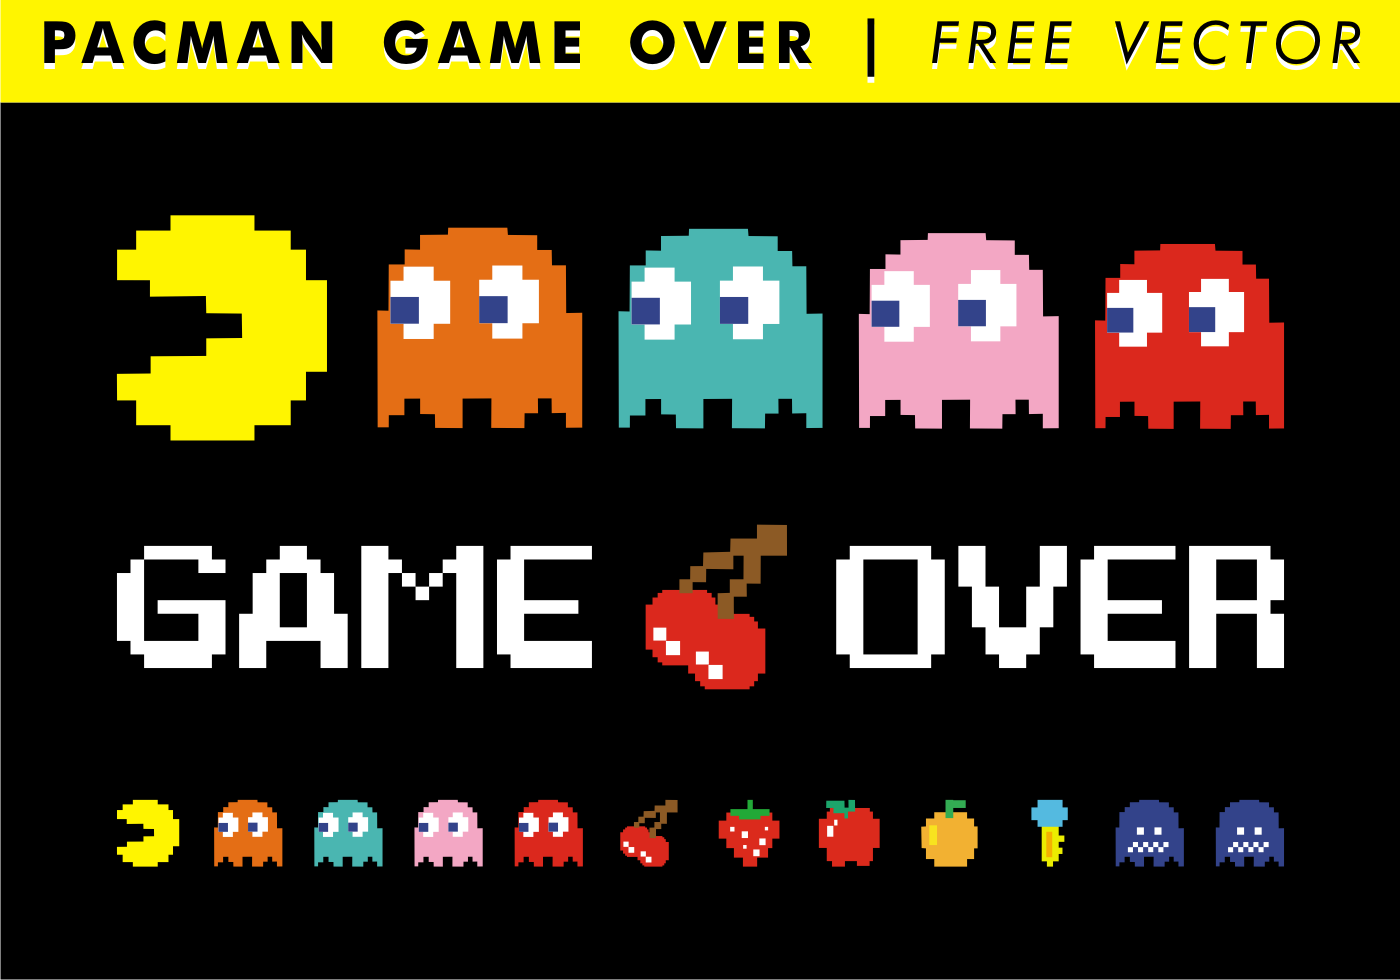 Game Over Free Vector Art - (2955 Free Downloads)